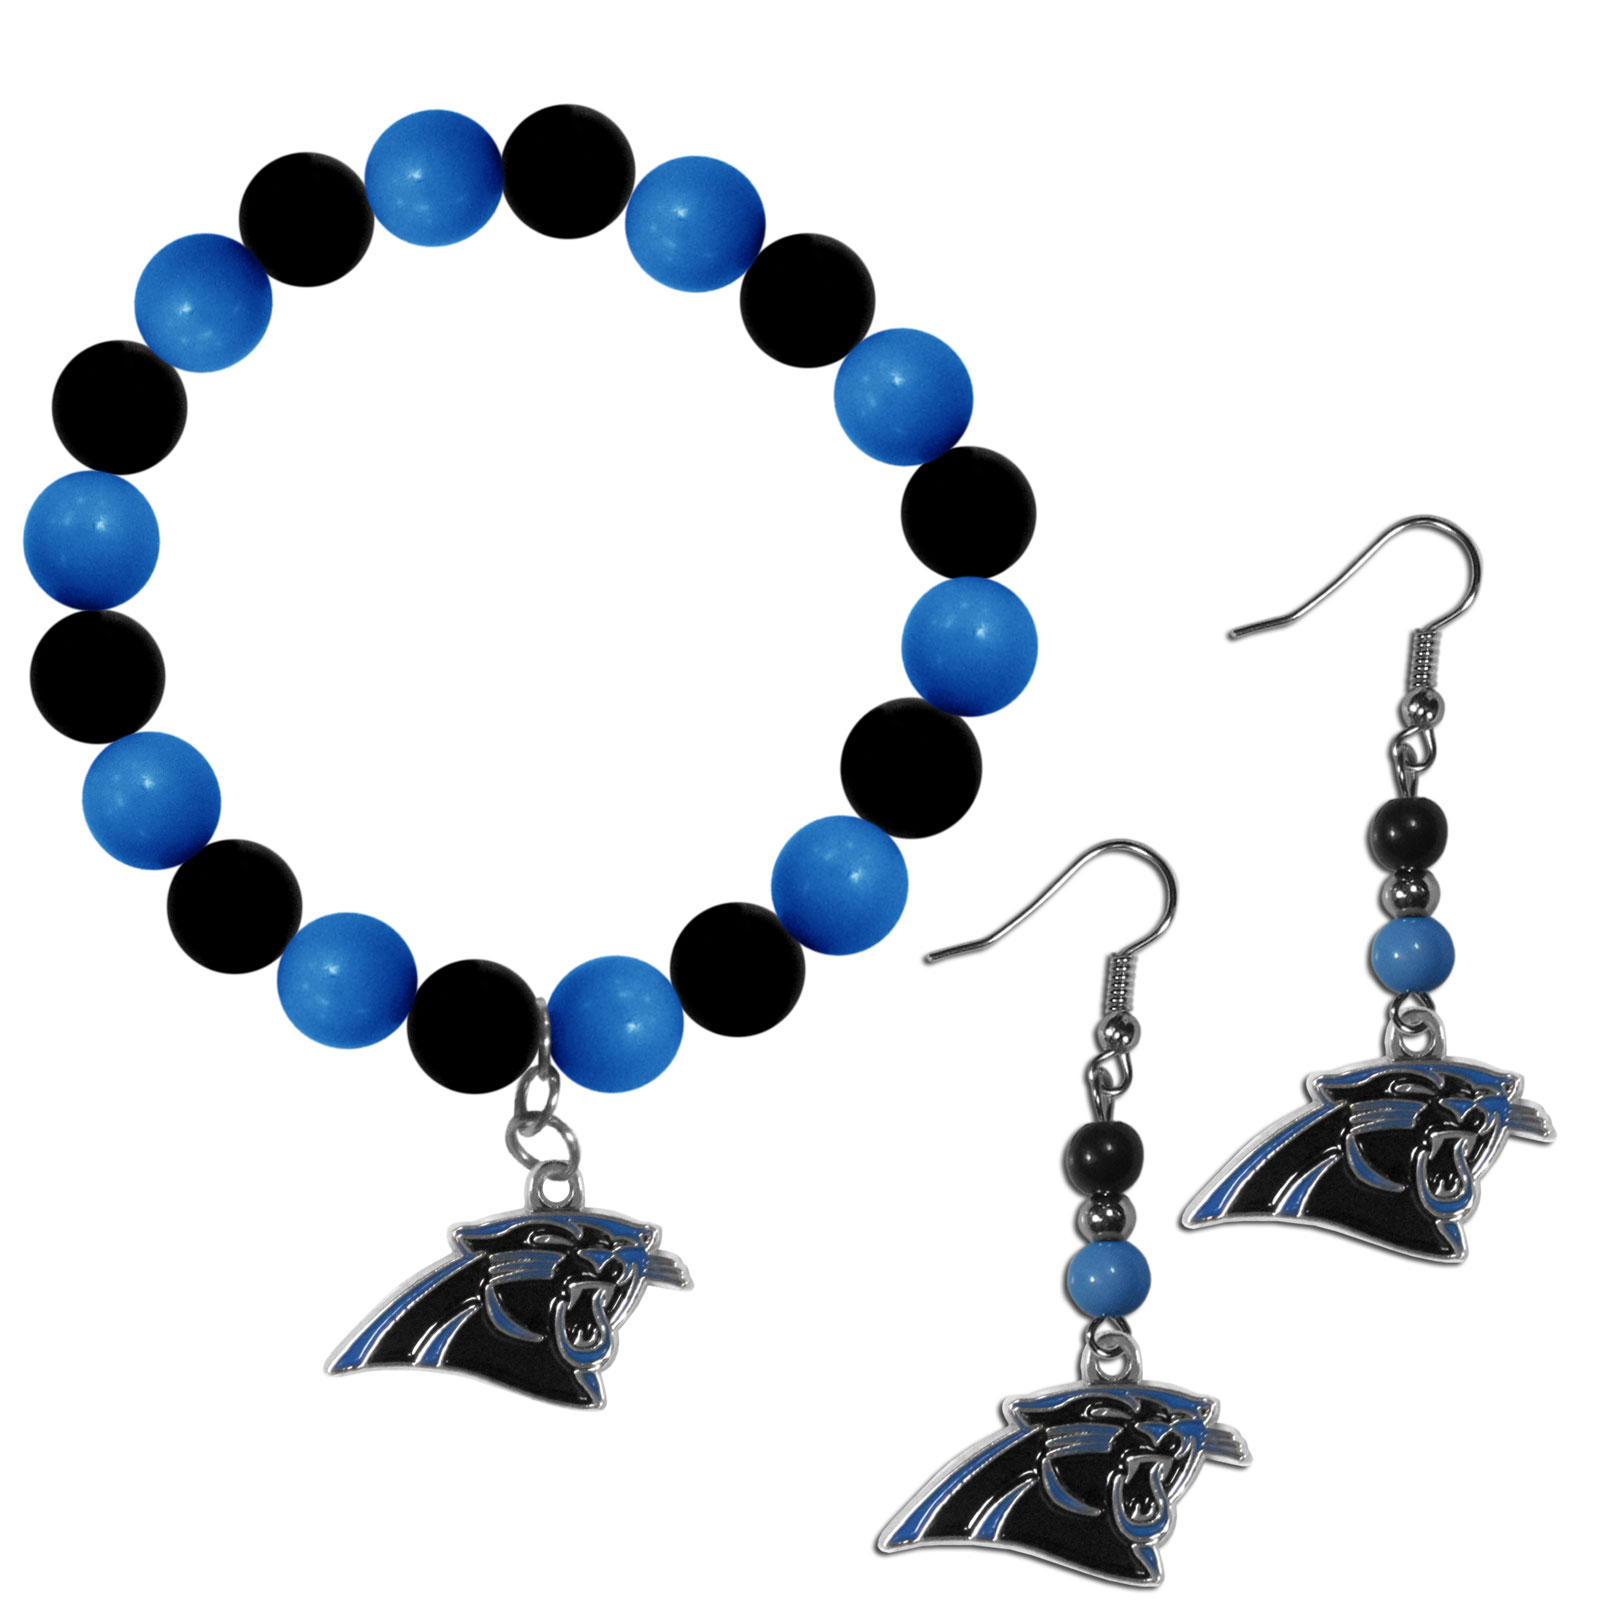 Carolina Panthers Fan Bead Earrings and Bracelet Set - This fun and colorful Carolina Panthers fan bead jewelry set is fun and casual with eye-catching beads in bright team colors. The fashionable dangle earrings feature a team colored beads that drop down to a carved and enameled charm. The stretch bracelet has larger matching beads that make a striking statement and have a matching team charm. These sassy yet sporty jewelry pieces make a perfect gift for any female fan. Spice up your game-day outfit with these fun colorful earrings and bracelet that are also cute enough for any day.